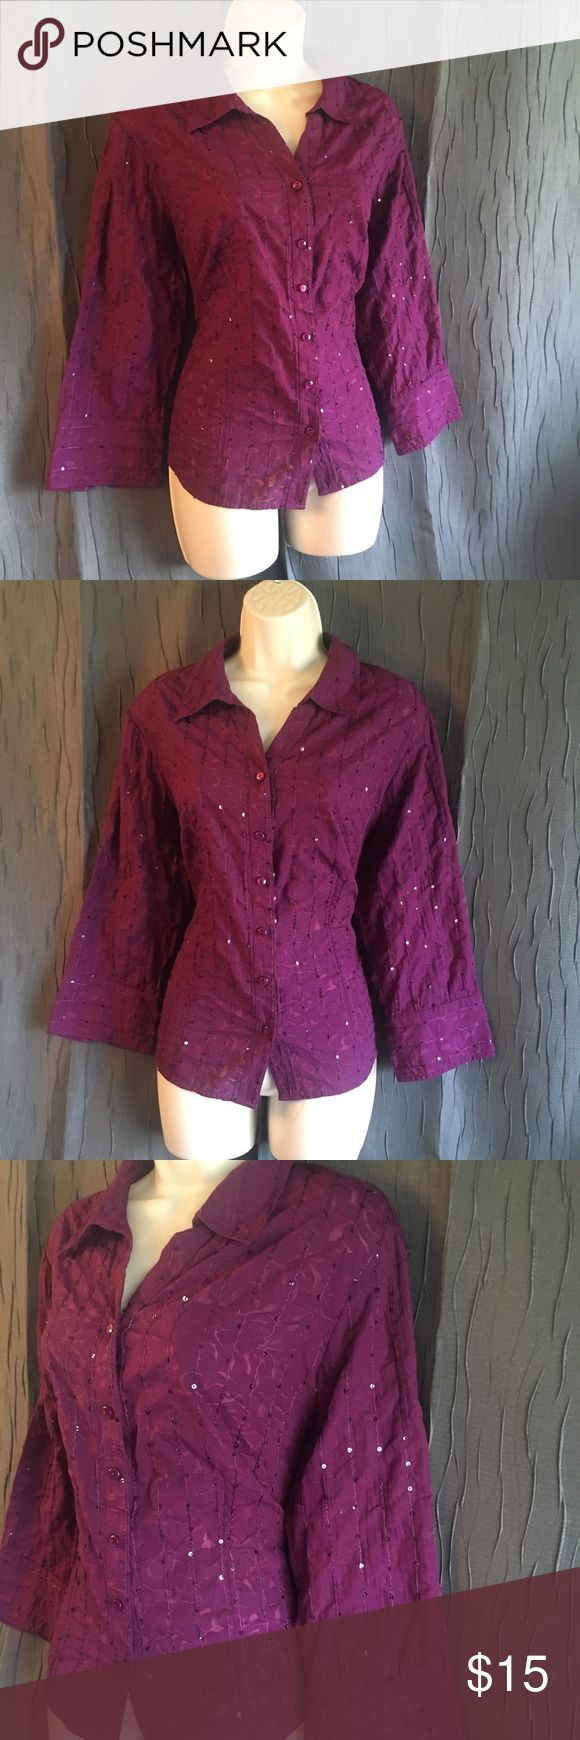 JM Collection Purple Sparkle Blouse Button up purple blouse with sparkling sequins size 12. Fold over collar, v-neck, wide 3/4 length sleeves, and made of 56% polyester & 44% cotton. Like new JM Collection Tops Button Down Shirts